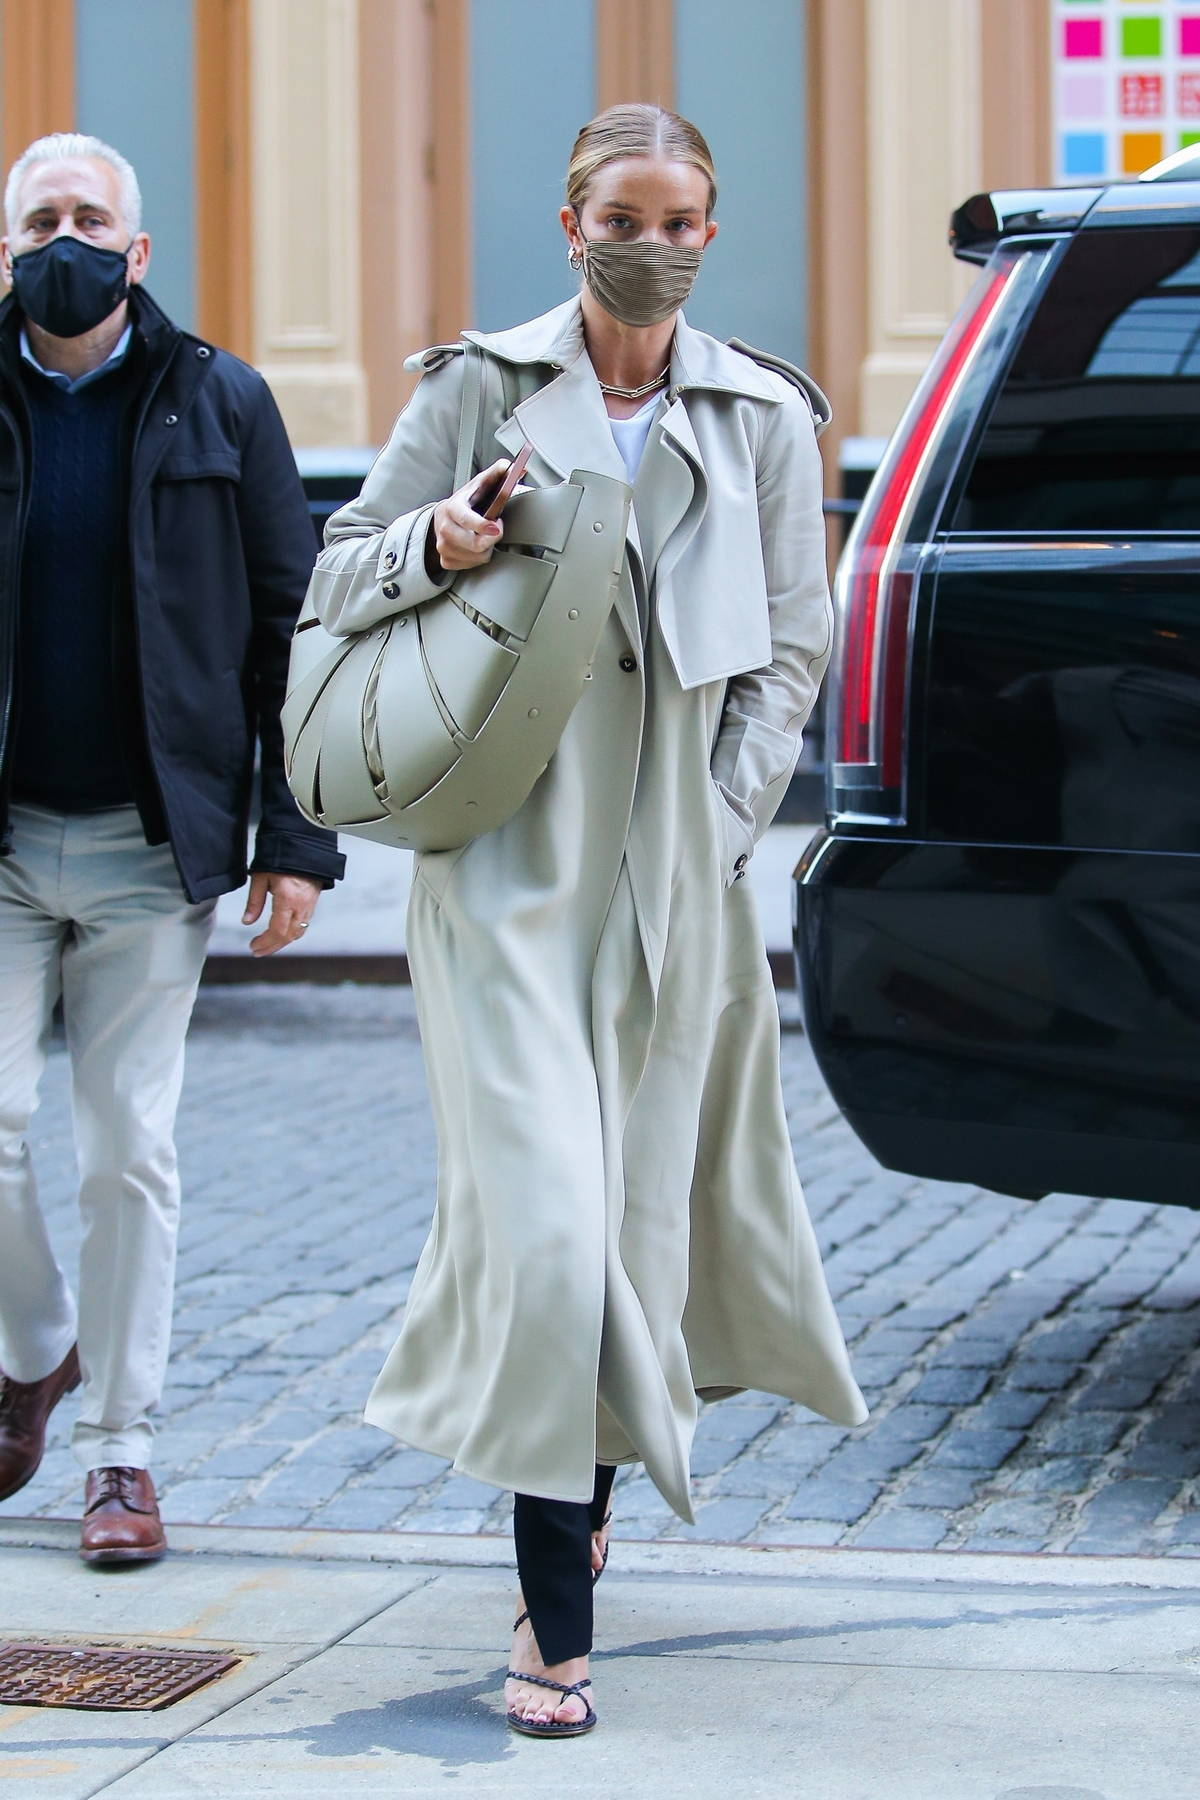 Rosie Huntington-Whiteley looks chic in trench coat while for breakfast in New York City